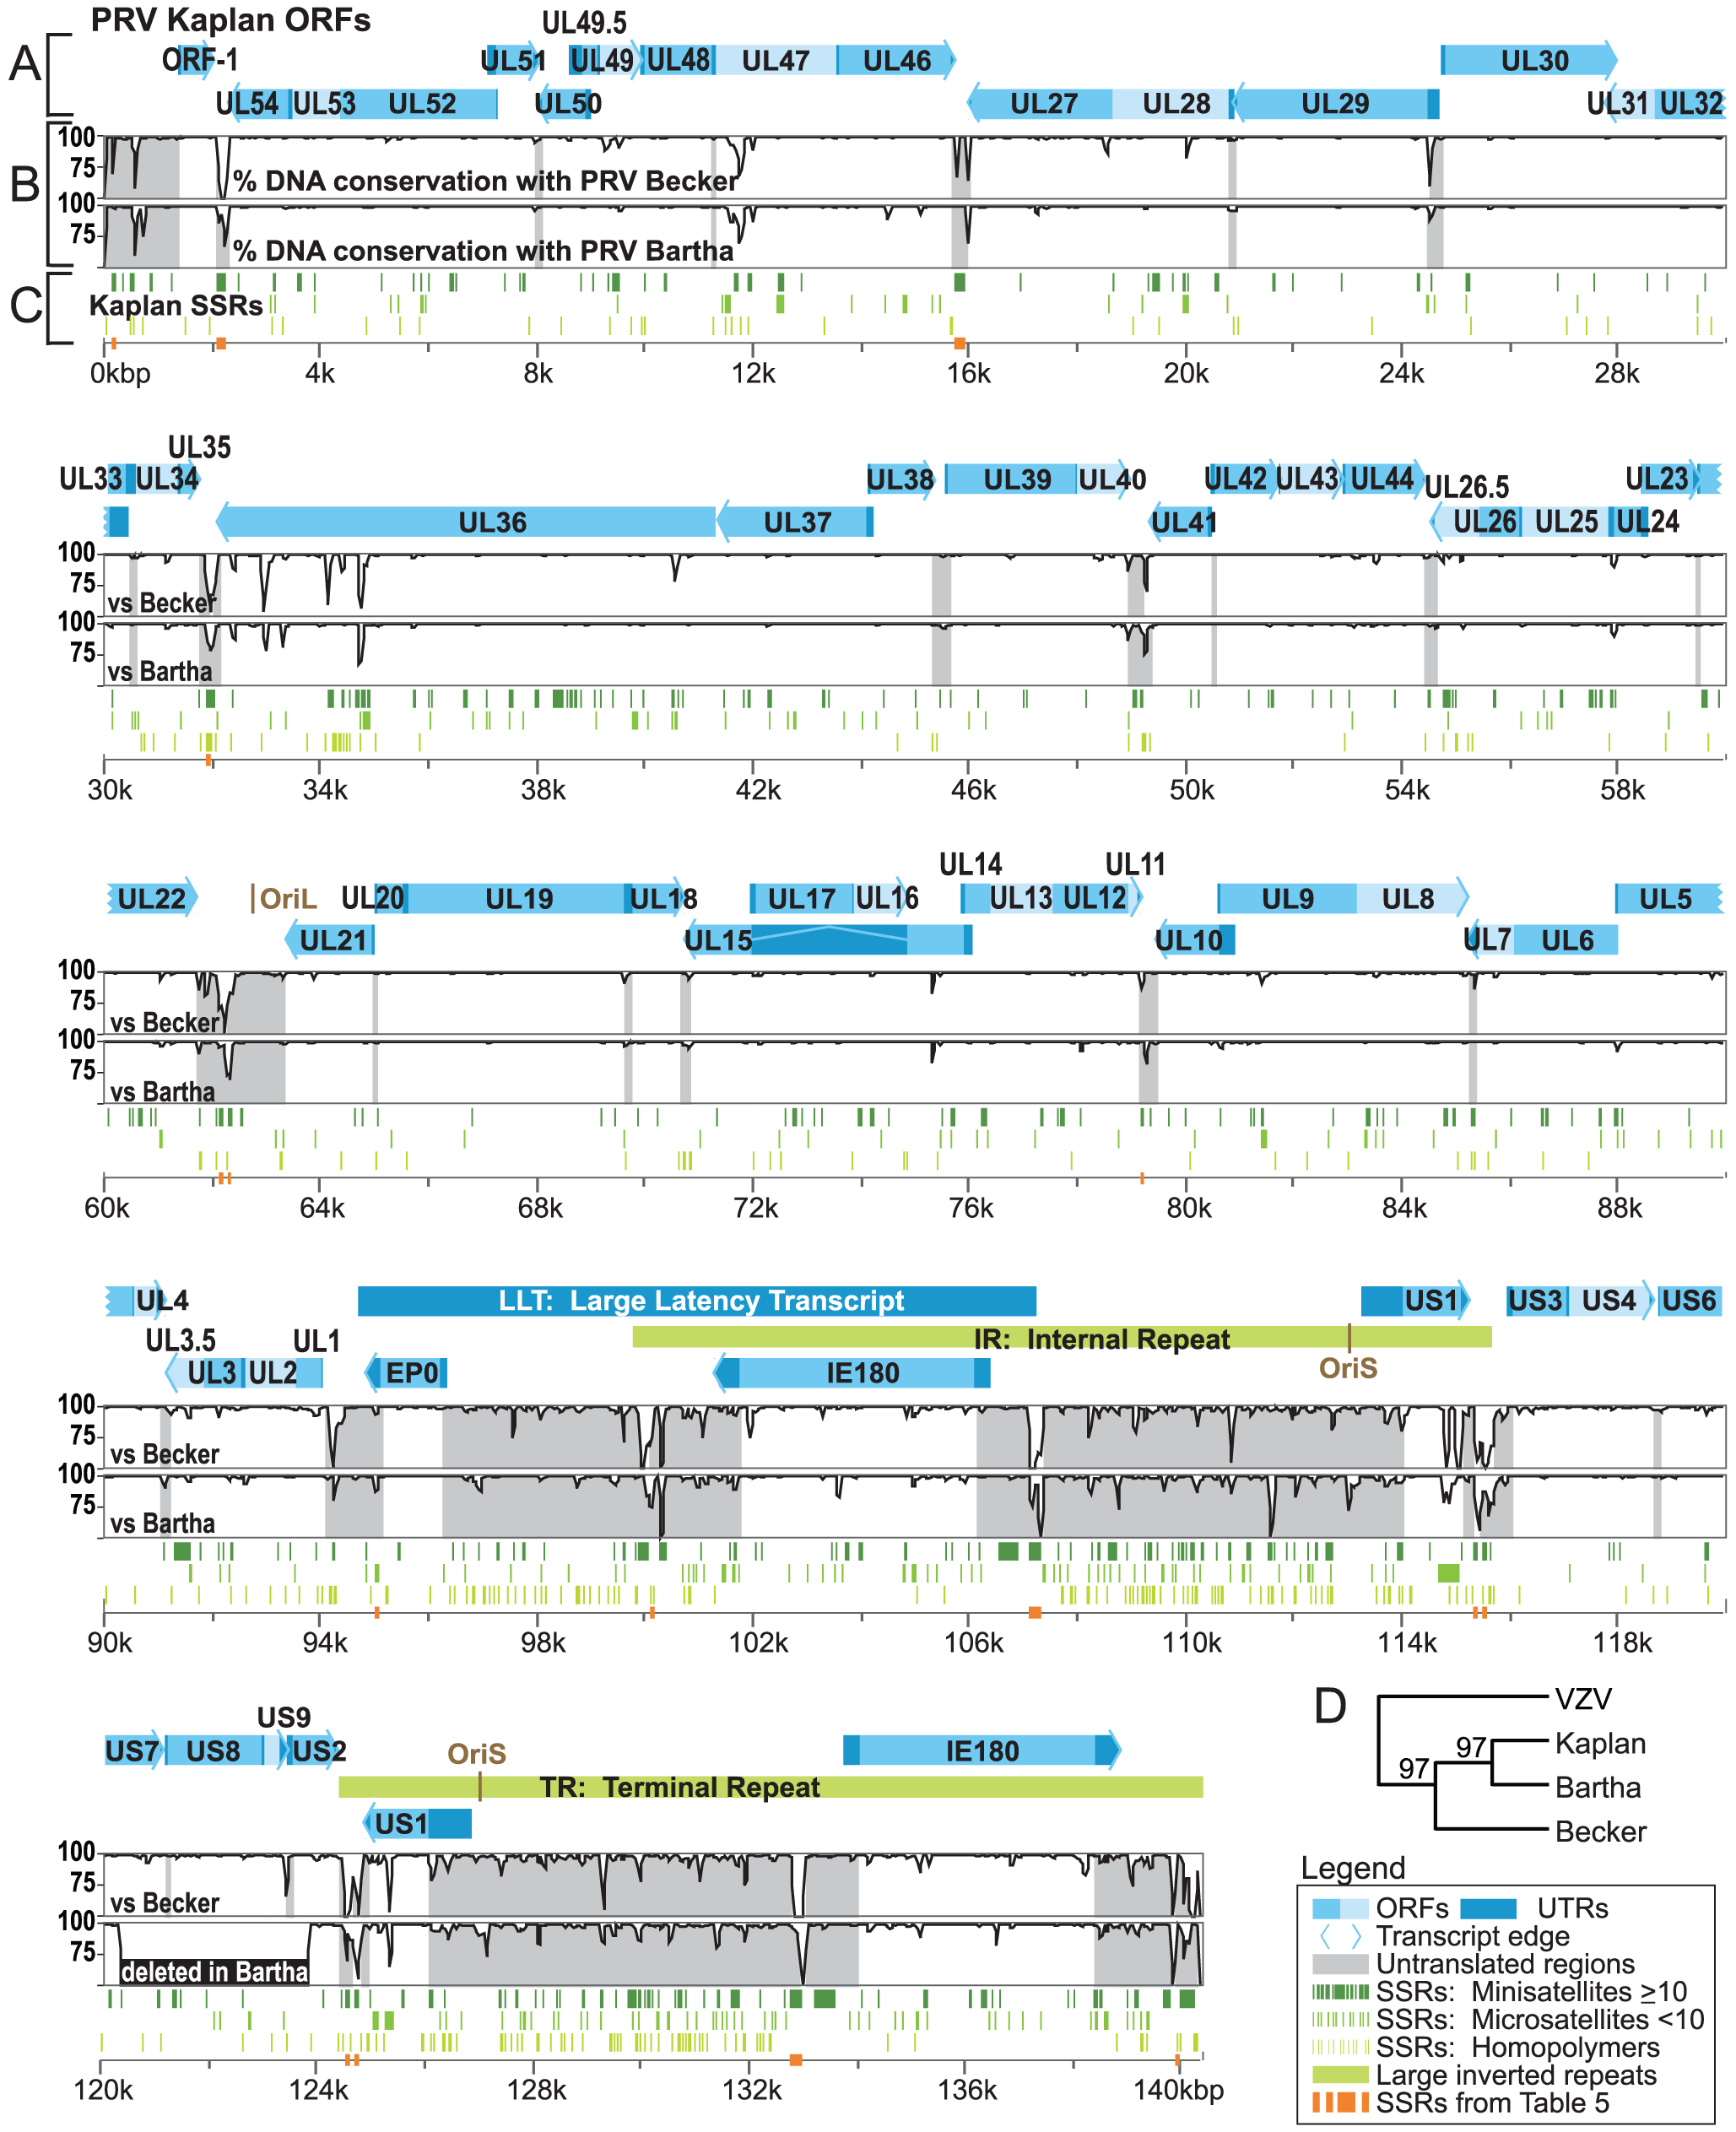 Genome organization of PRV Kaplan and comparison of sequence conservation with strains Becker and Bartha.